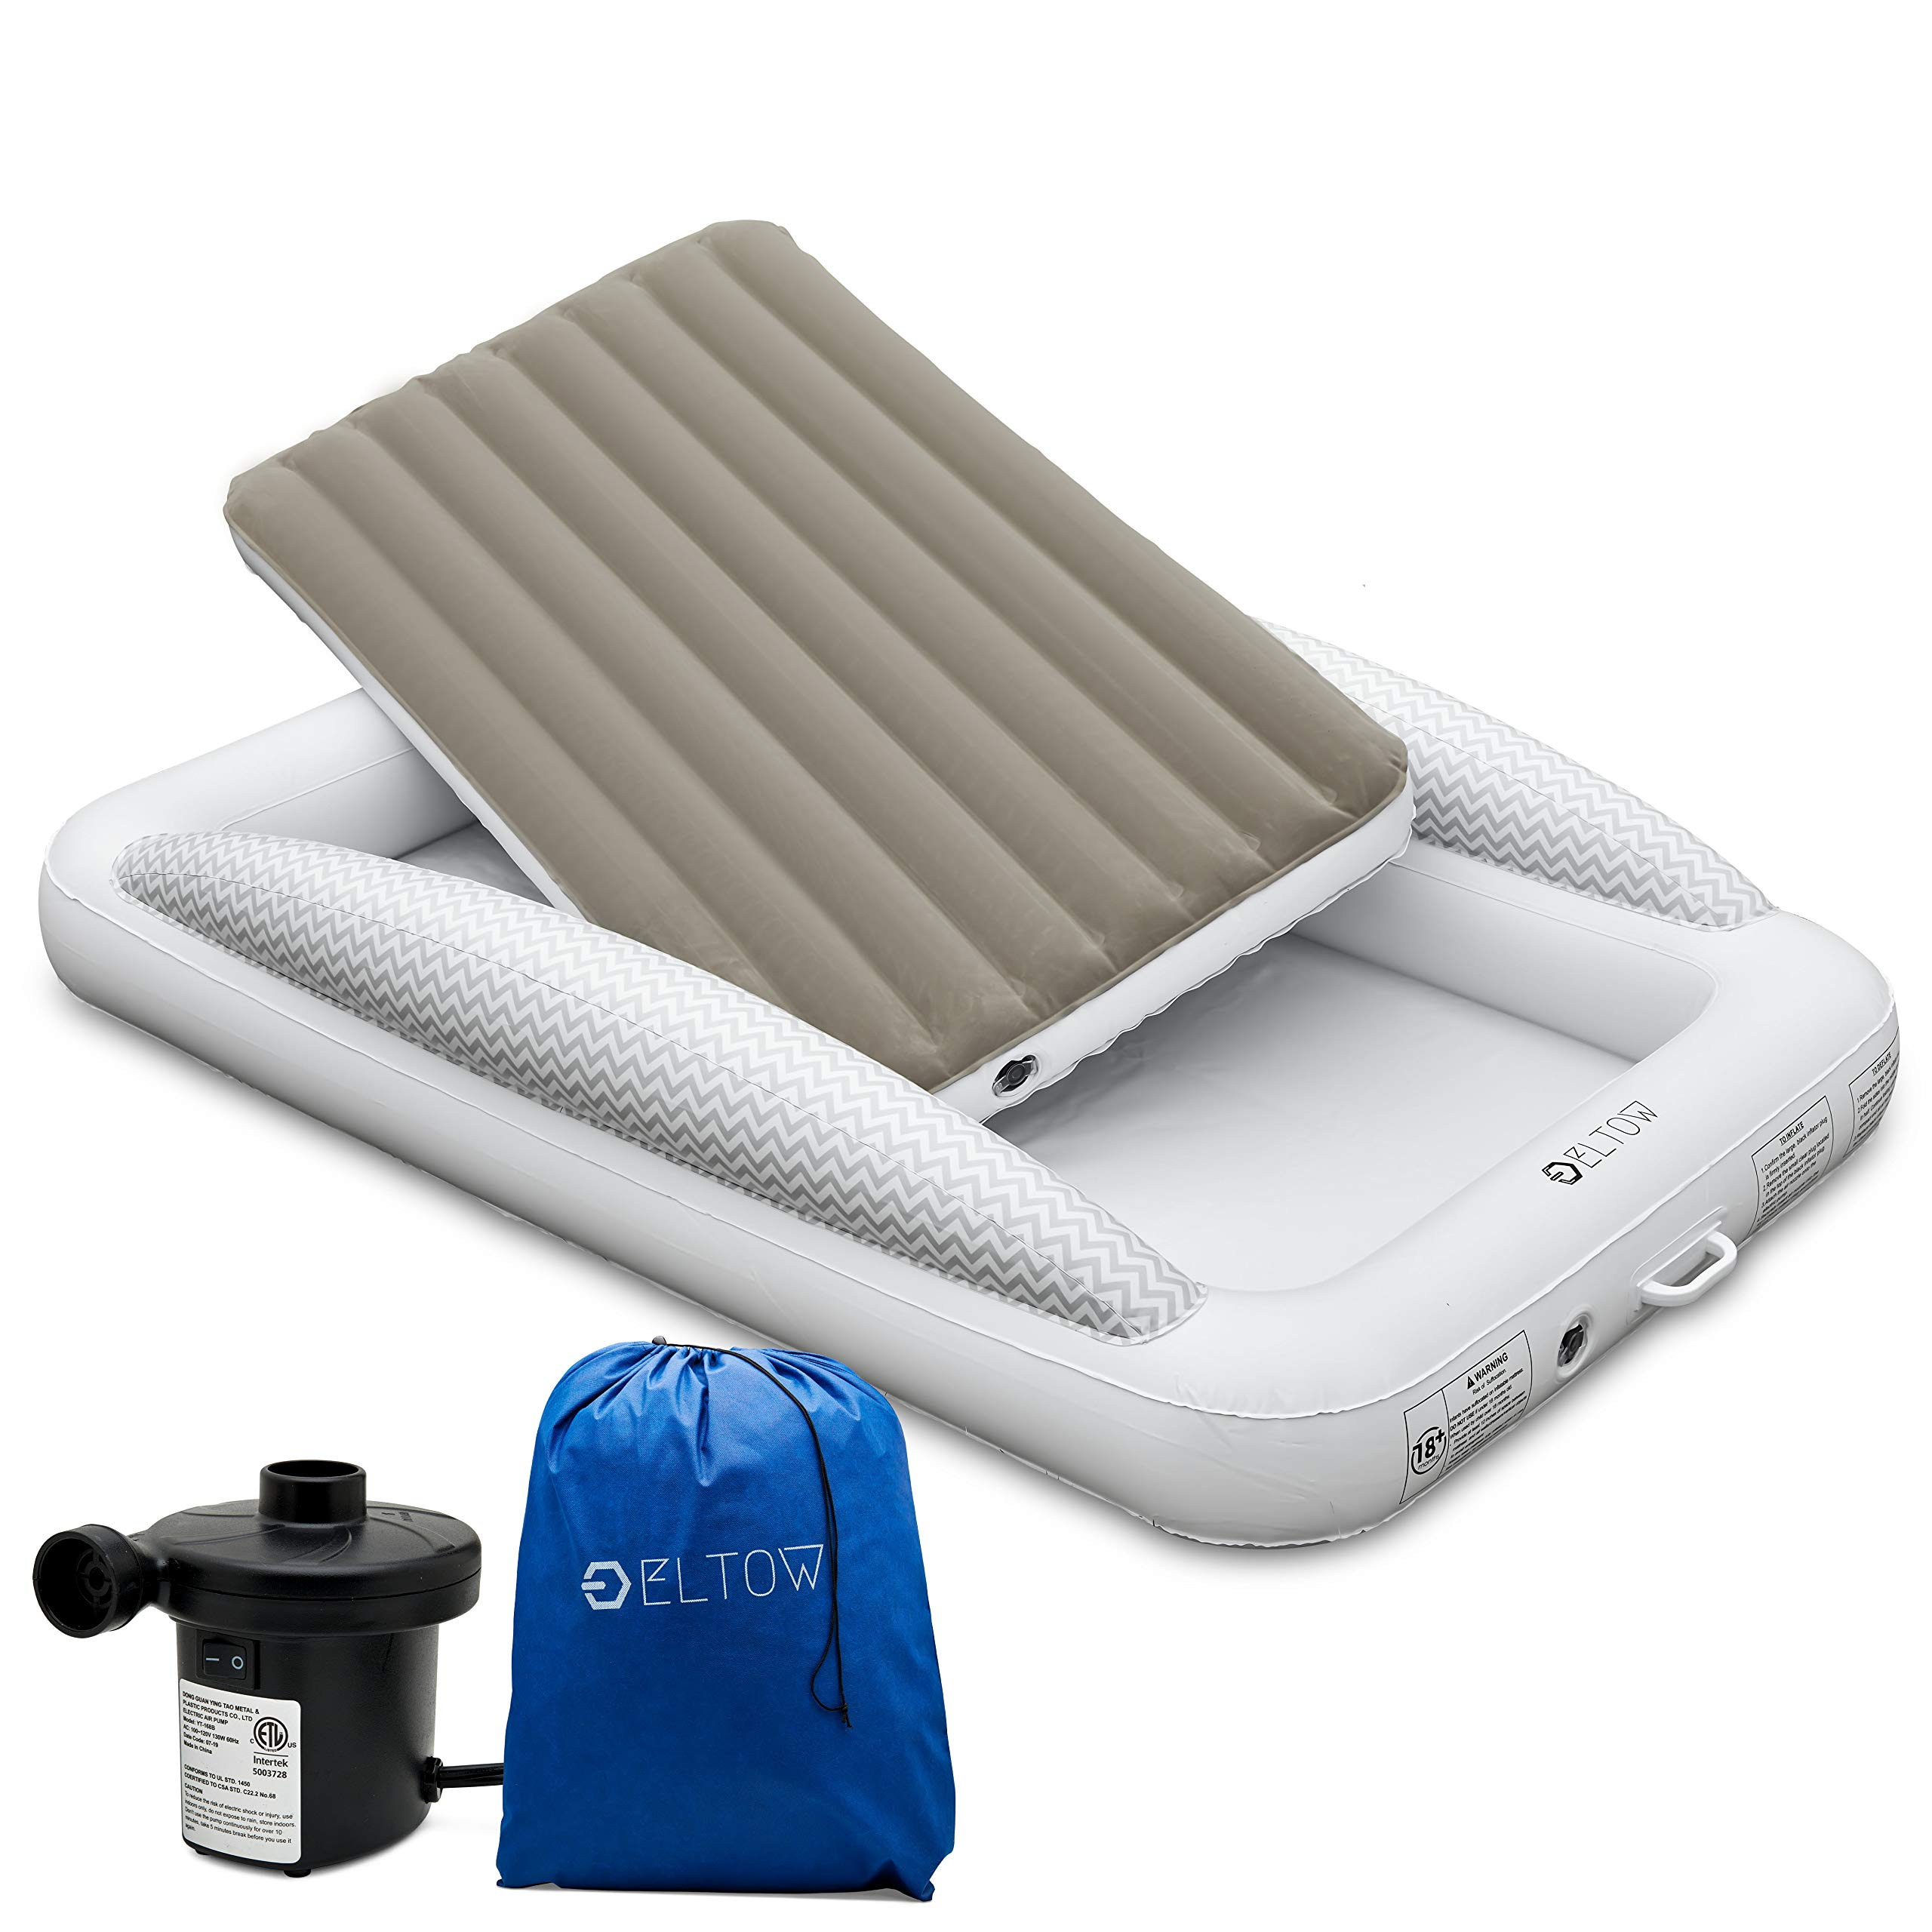 Picture of: Eltow Inflatable Toddler Air Mattress Bed With Safety Bumper Portable Modern Travel Bed Cot For Toddlers Perfect For Travel Camping Removable Mattress High Speed Pump And Travel Bag Included